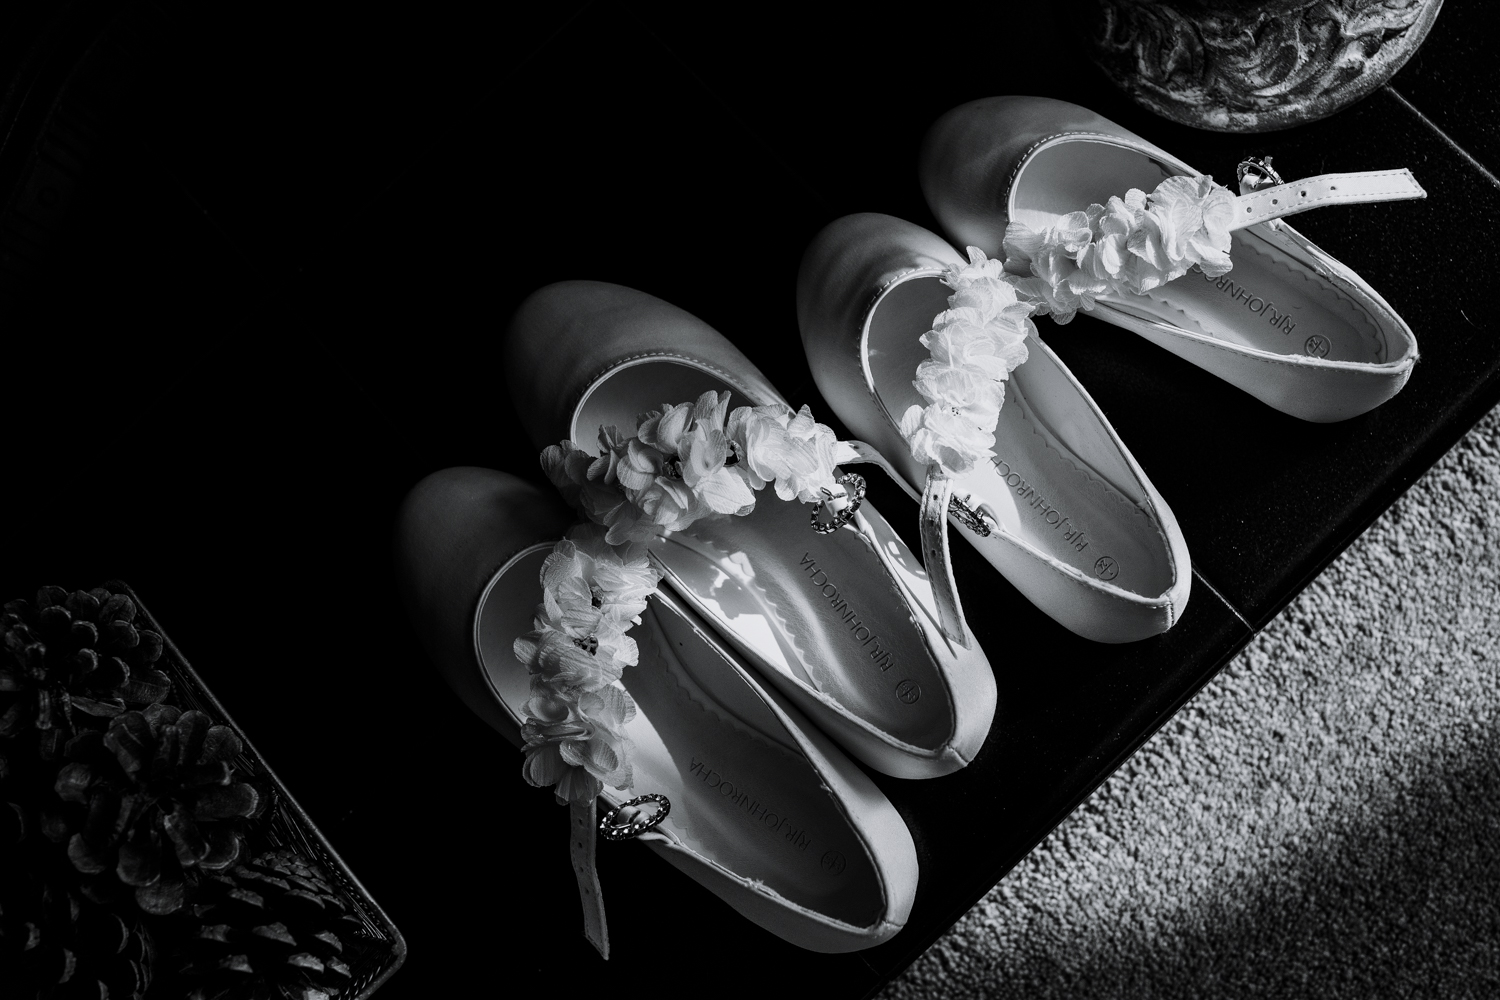 The young bridesmaids shoes lined up